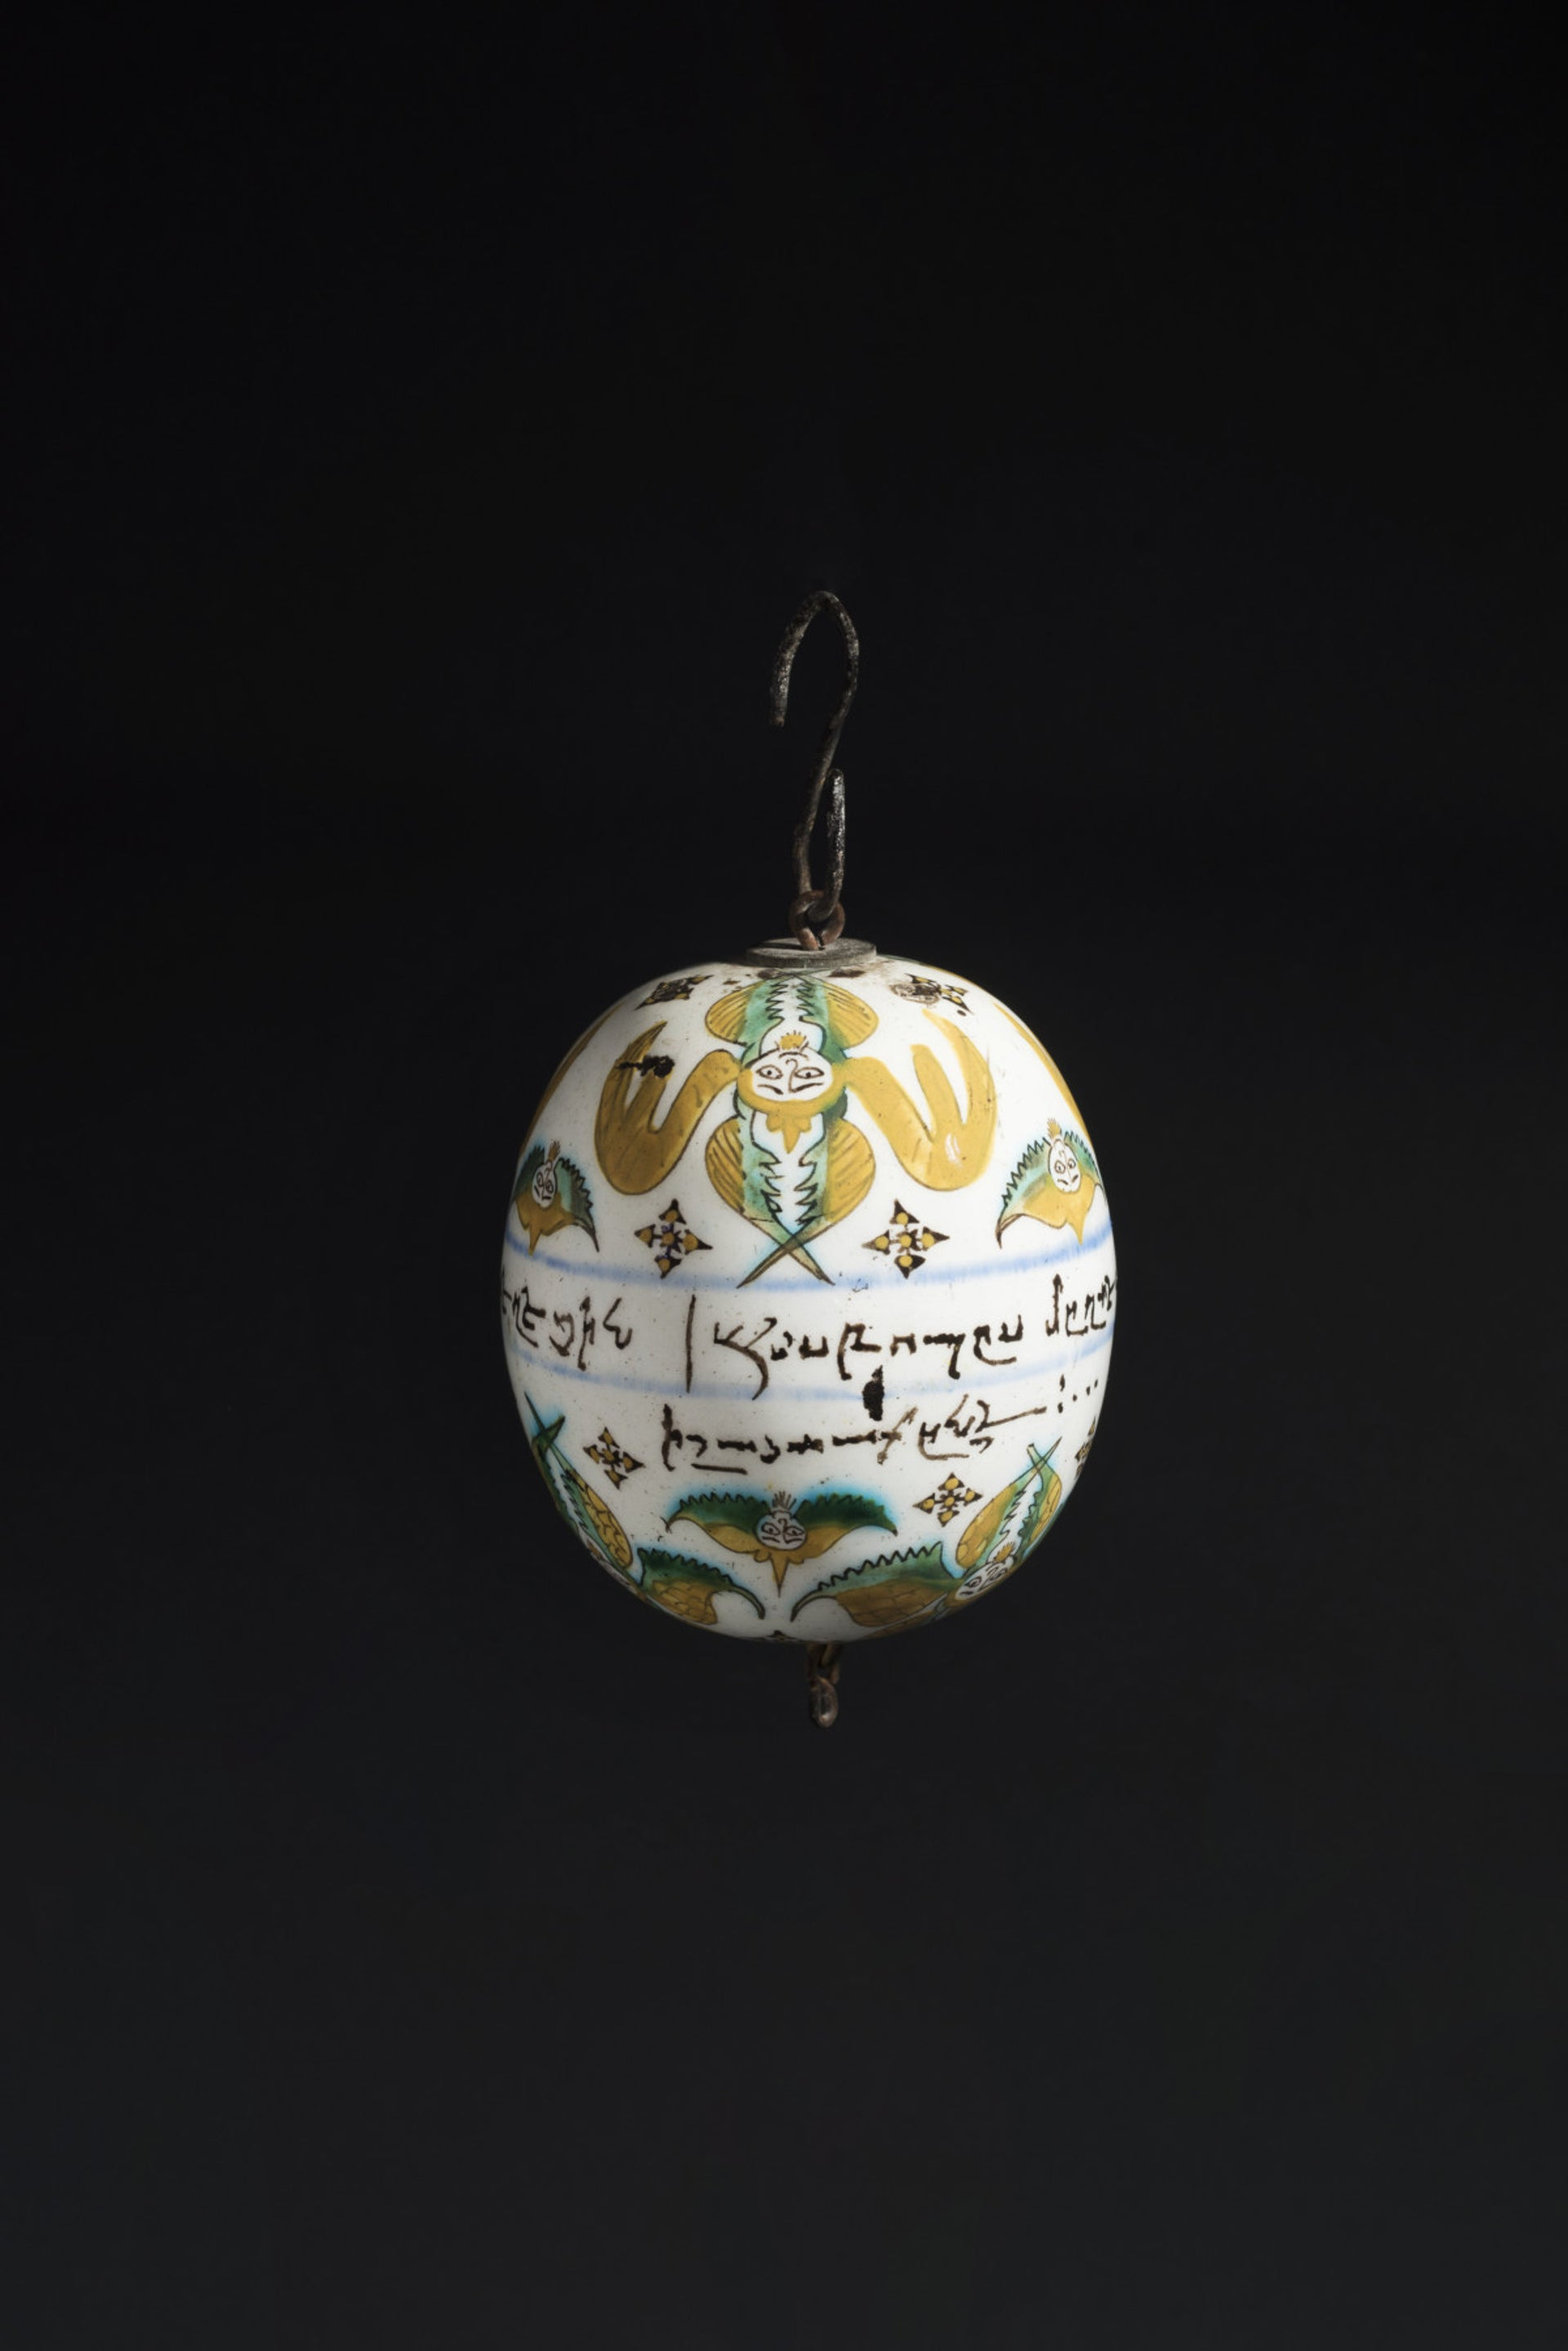 Egg-shaped hanging ornament bearing a date and a dedication in Armenian, written by a pilgrim to the Church of the Holy Archangels (Deir Al-Zeitoun) in Jerusalem, Kütahya, 1739.